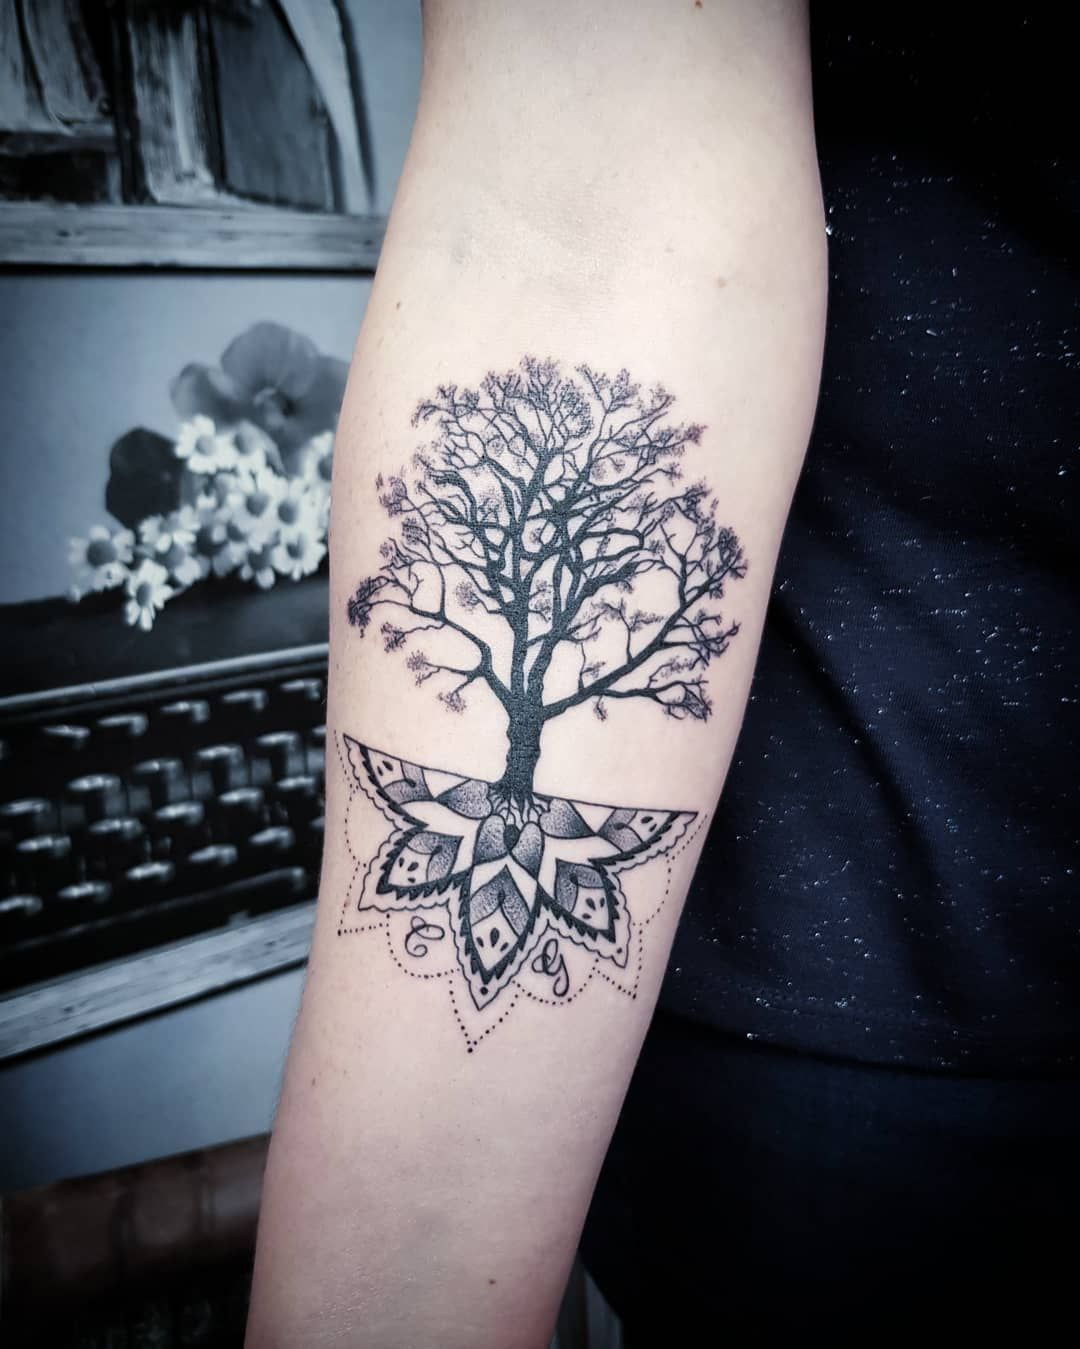 Leeloo Shelby Tattoo Artist On Instagram Thanks Pascaline For Your Trust Tree Of Life Mandala Ta In 2020 Tree Of Life Tattoo Tattoos Tattoo Artists